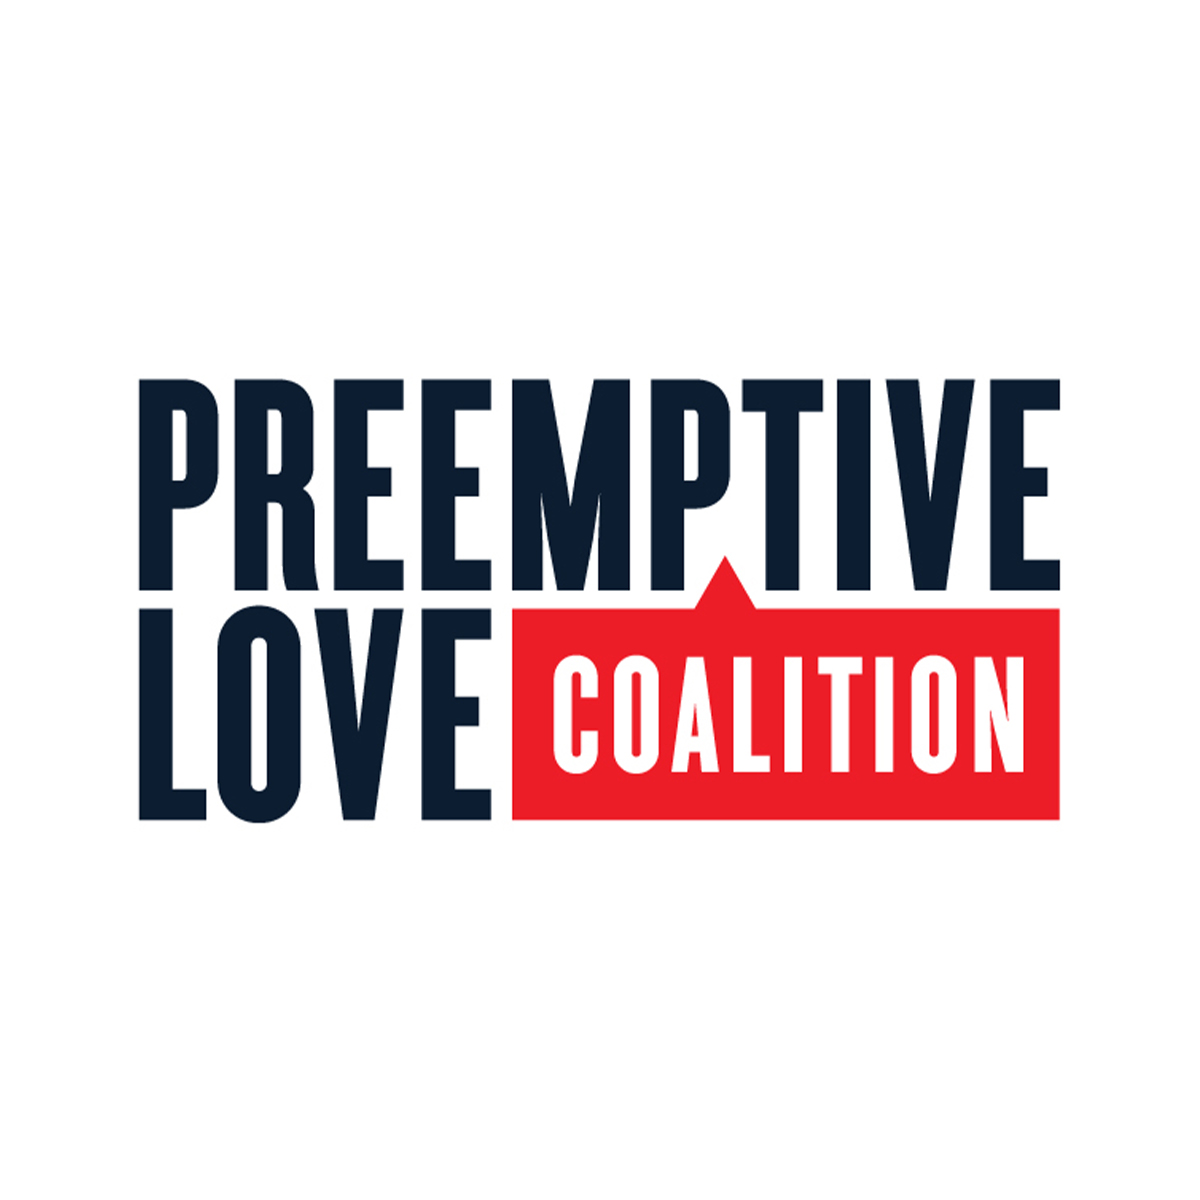 preemptive-love-coalition